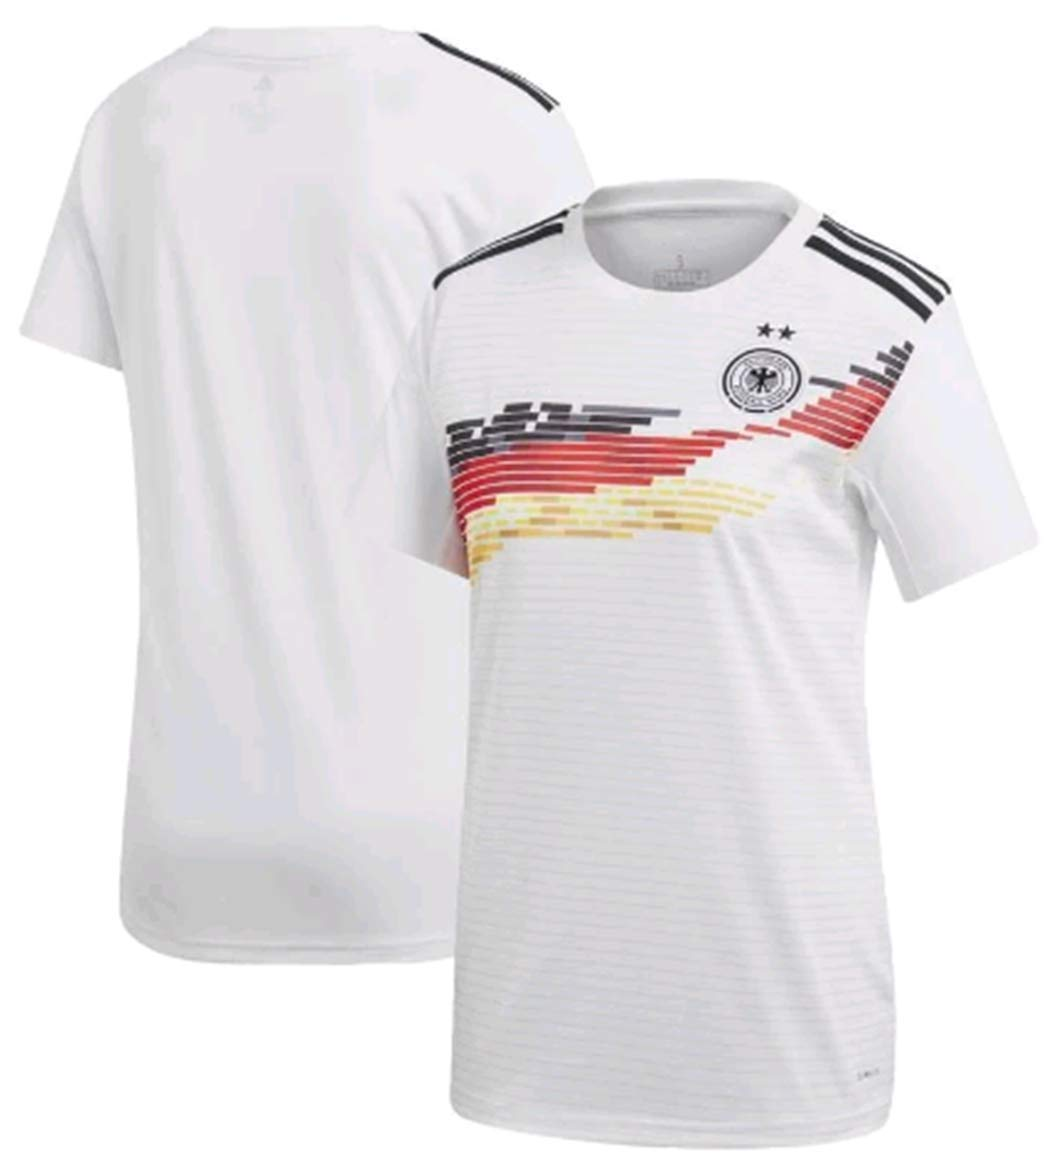 ZZXYSY 2019 Women's World Cup Germany Women's Home Soccer Jersey Colour White (M)